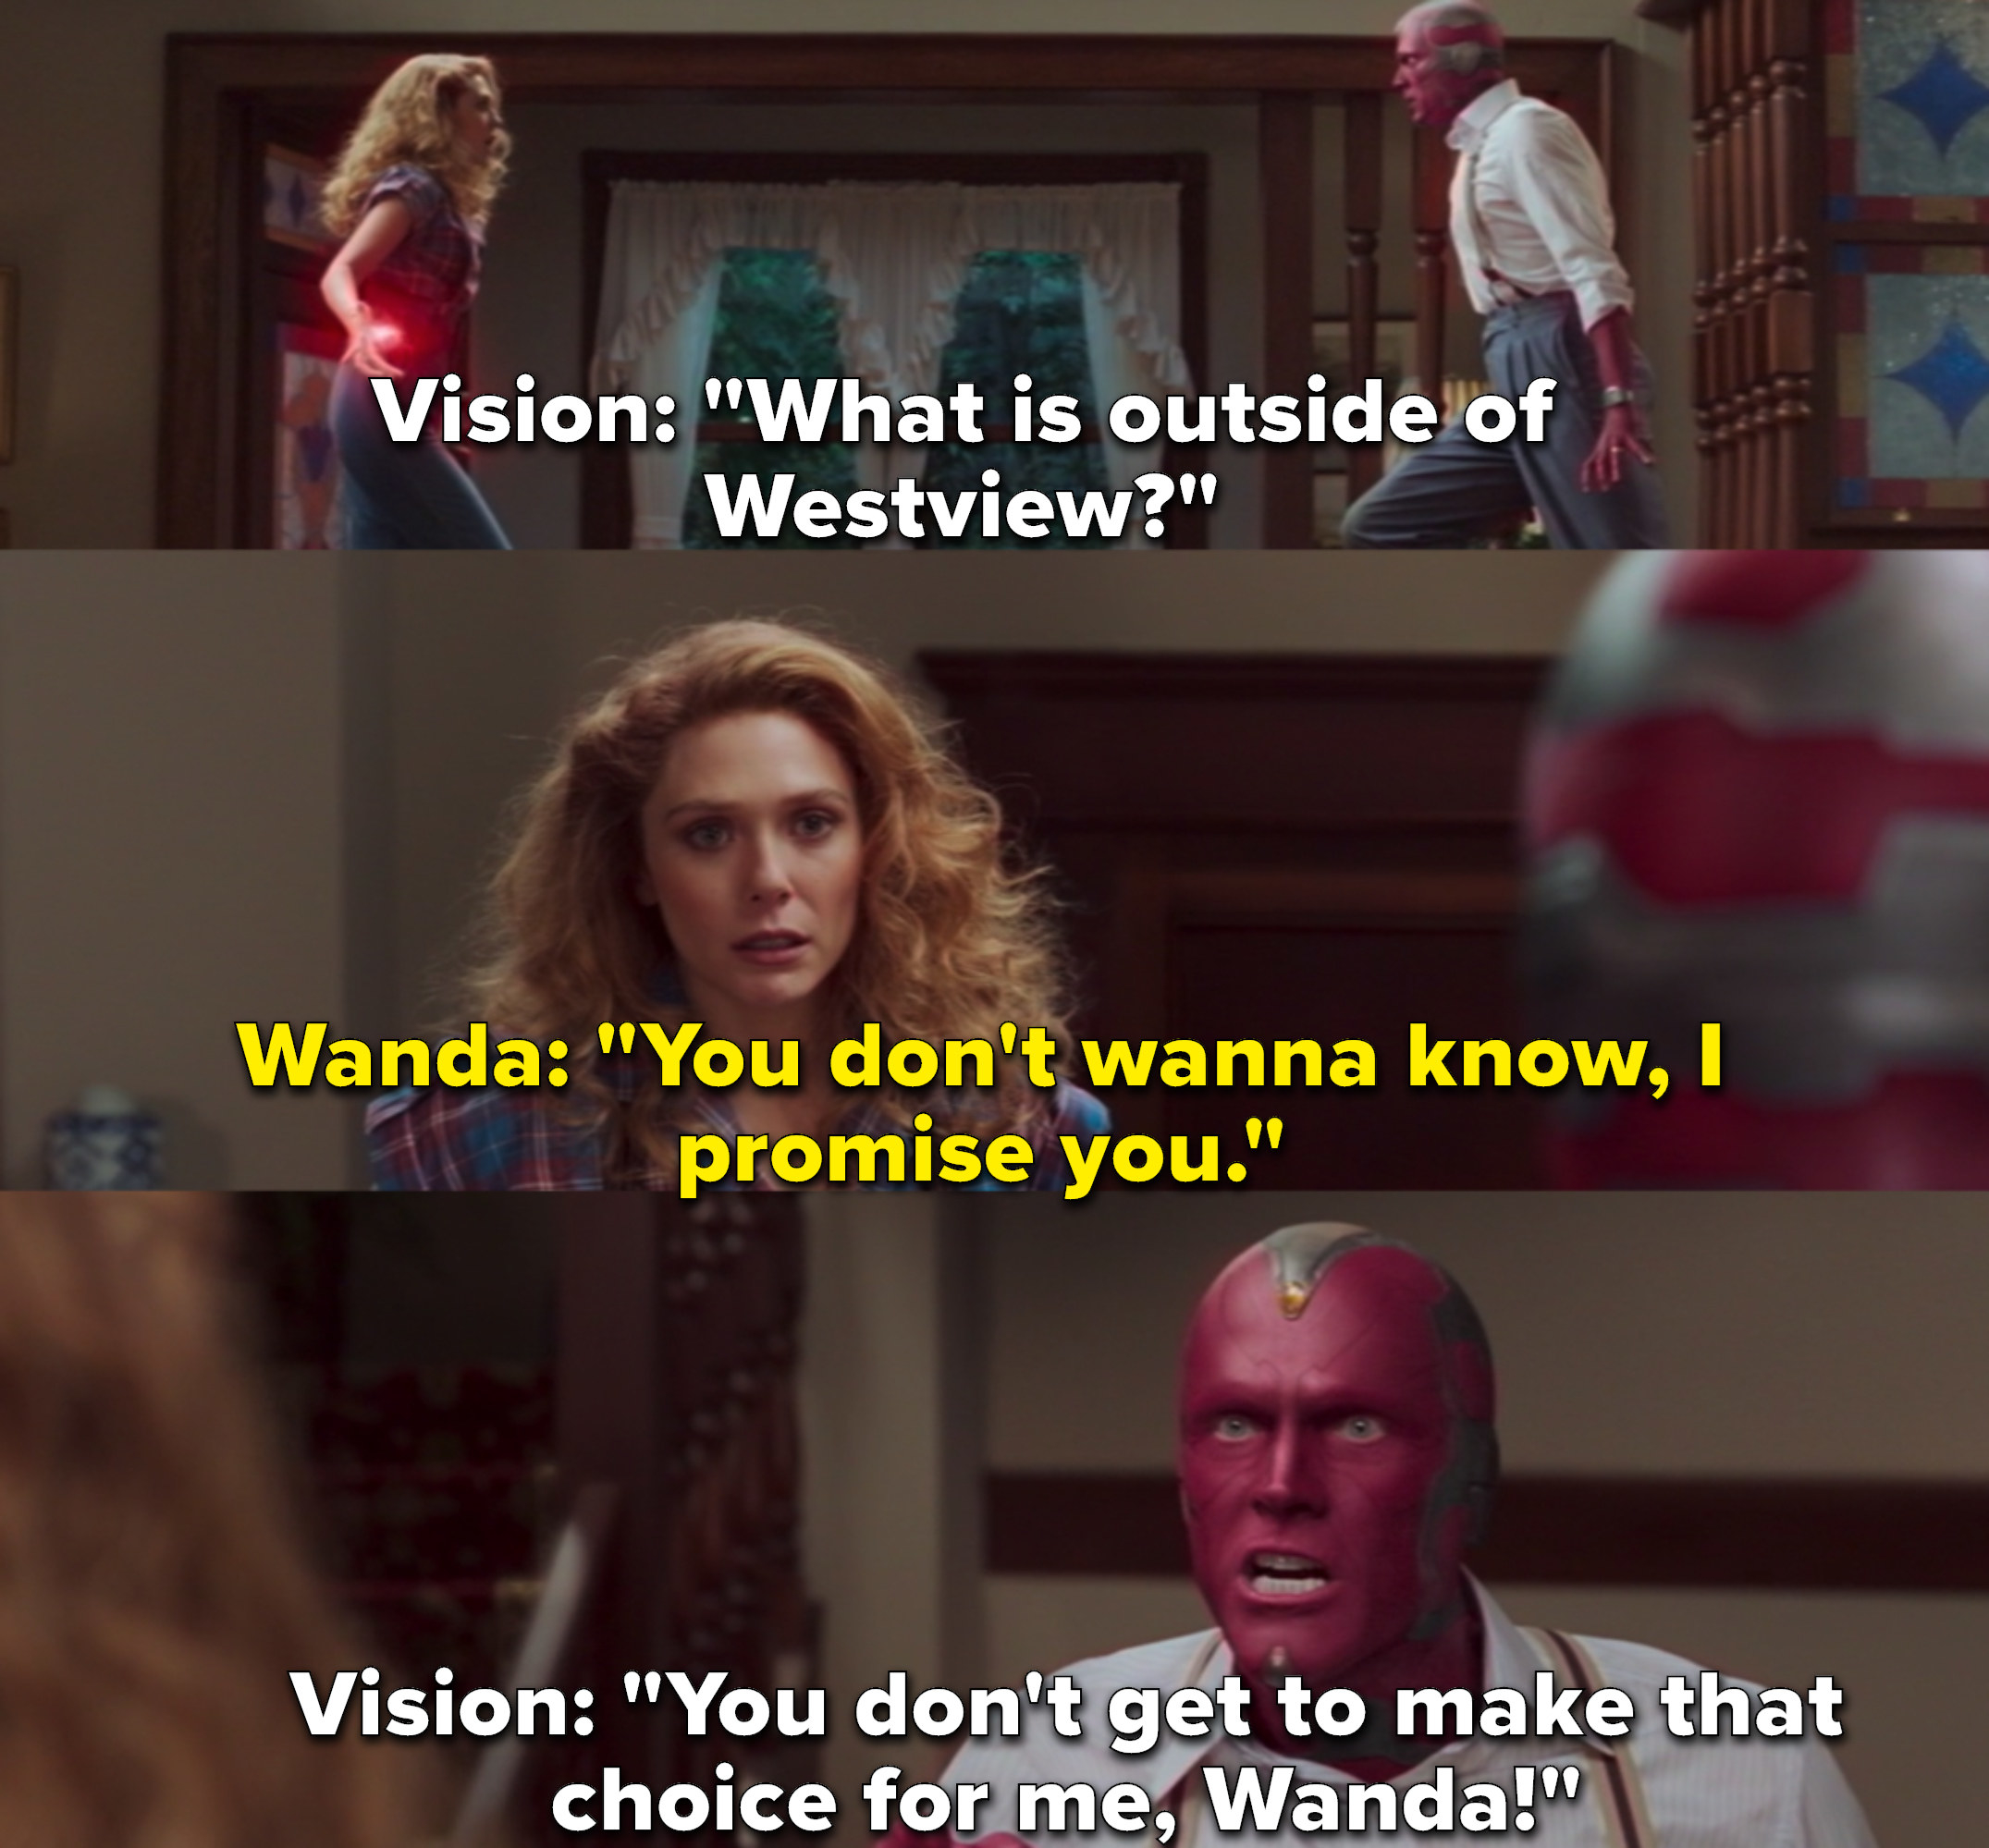 """Vision questioning what is outside of Westview to which Wanda replies, """"You don't wanna know, I promise you"""""""